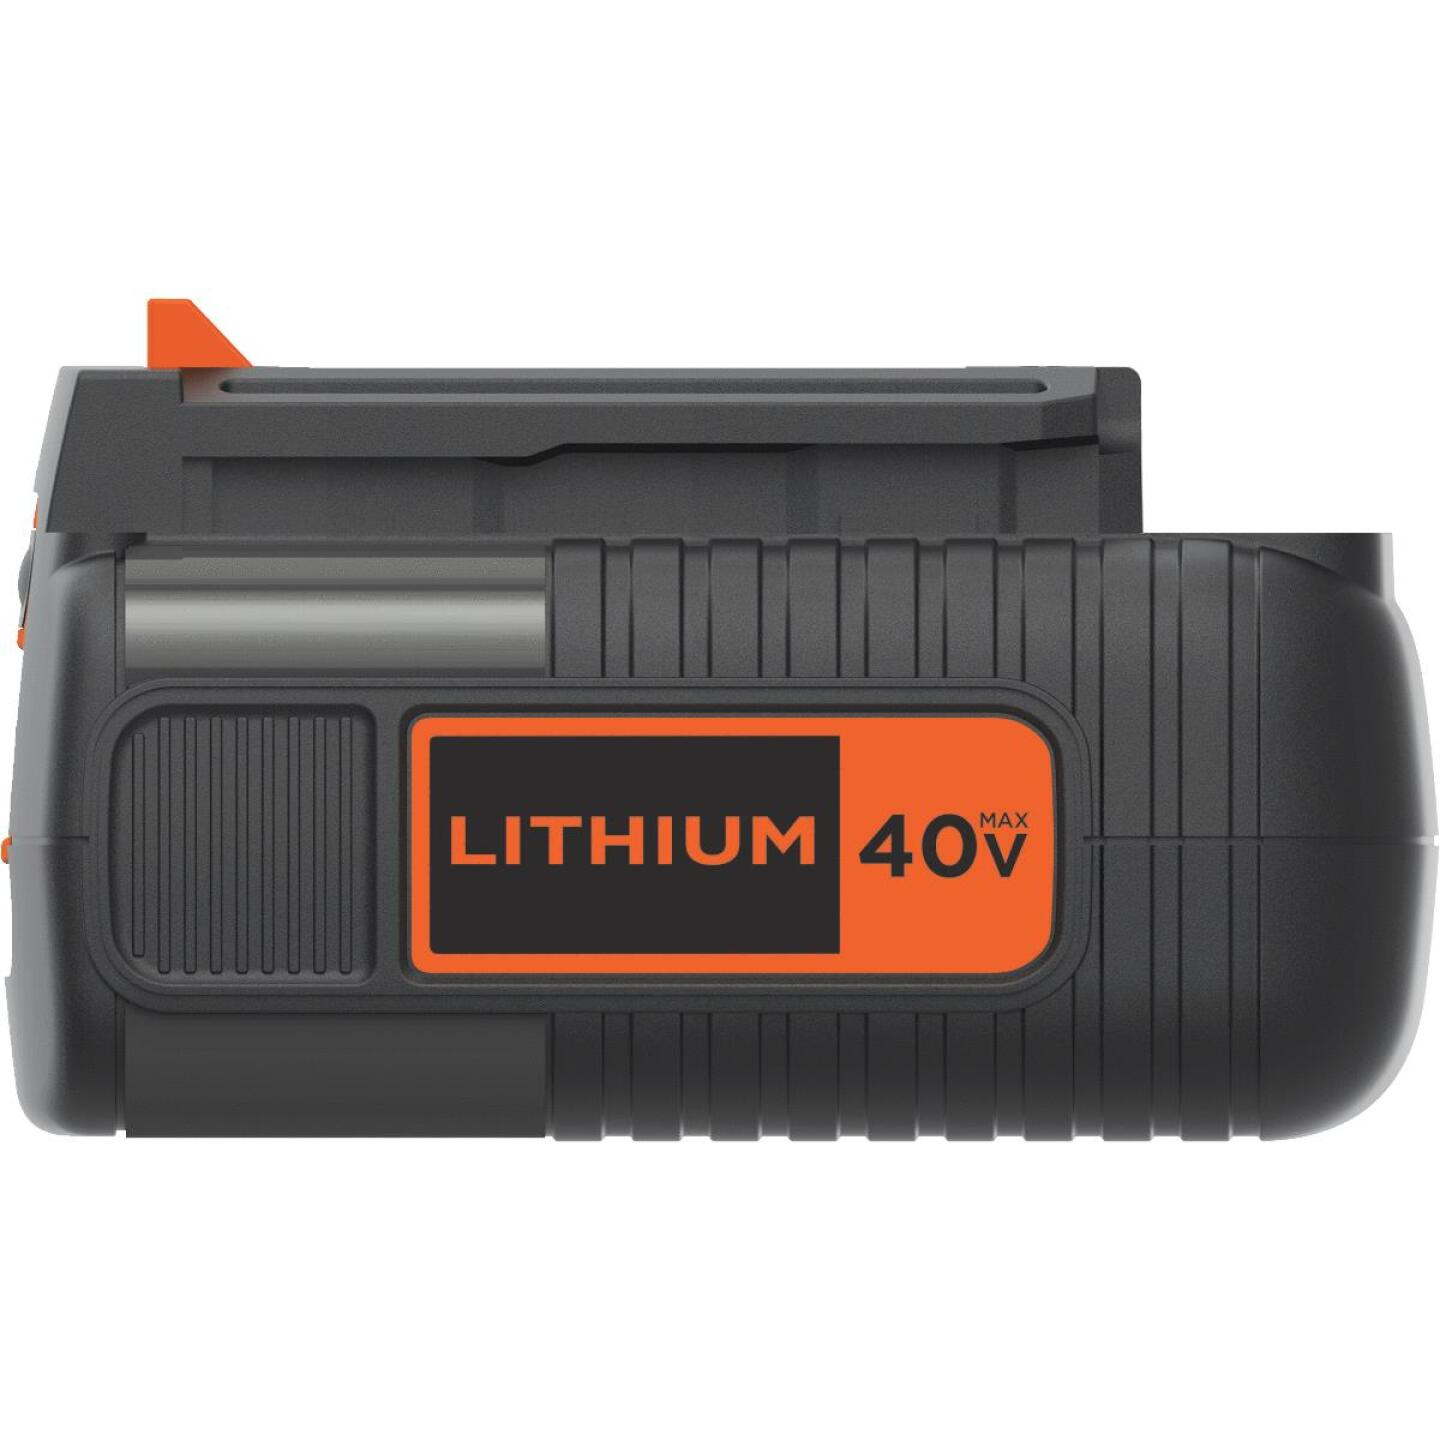 Black & Decker 40V Power Tool Replacement Battery Image 2